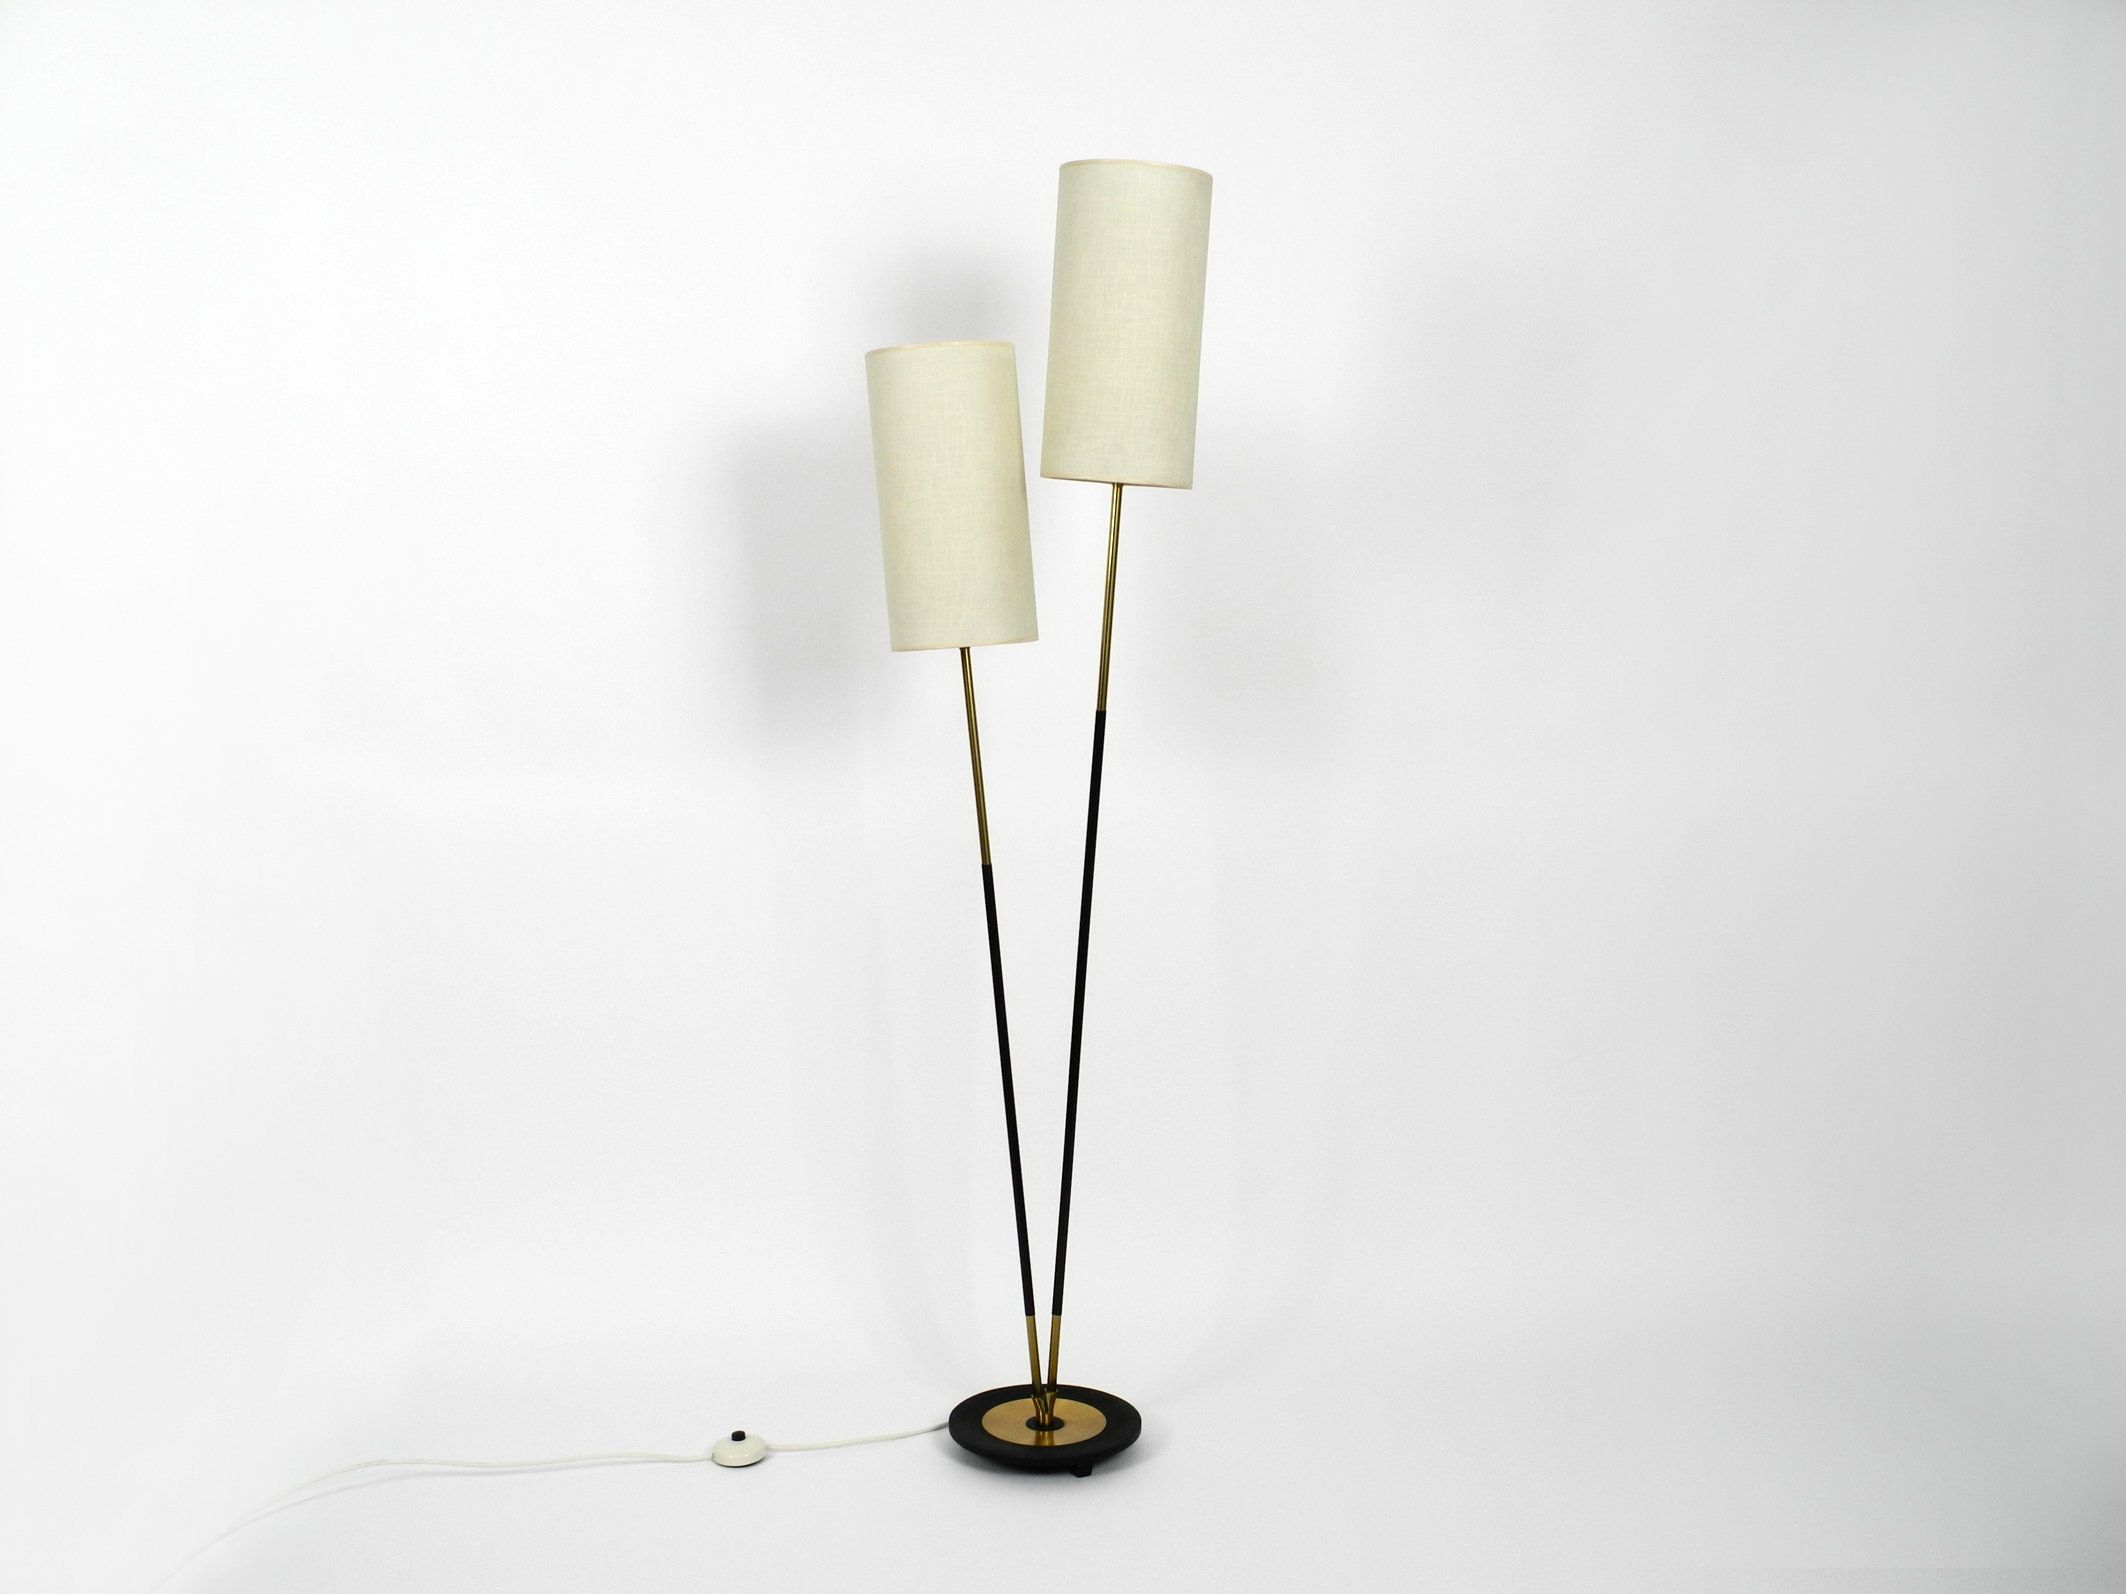 Gorgeous Almost Mint Mid Century Modern Brass Floor Lamp With Two